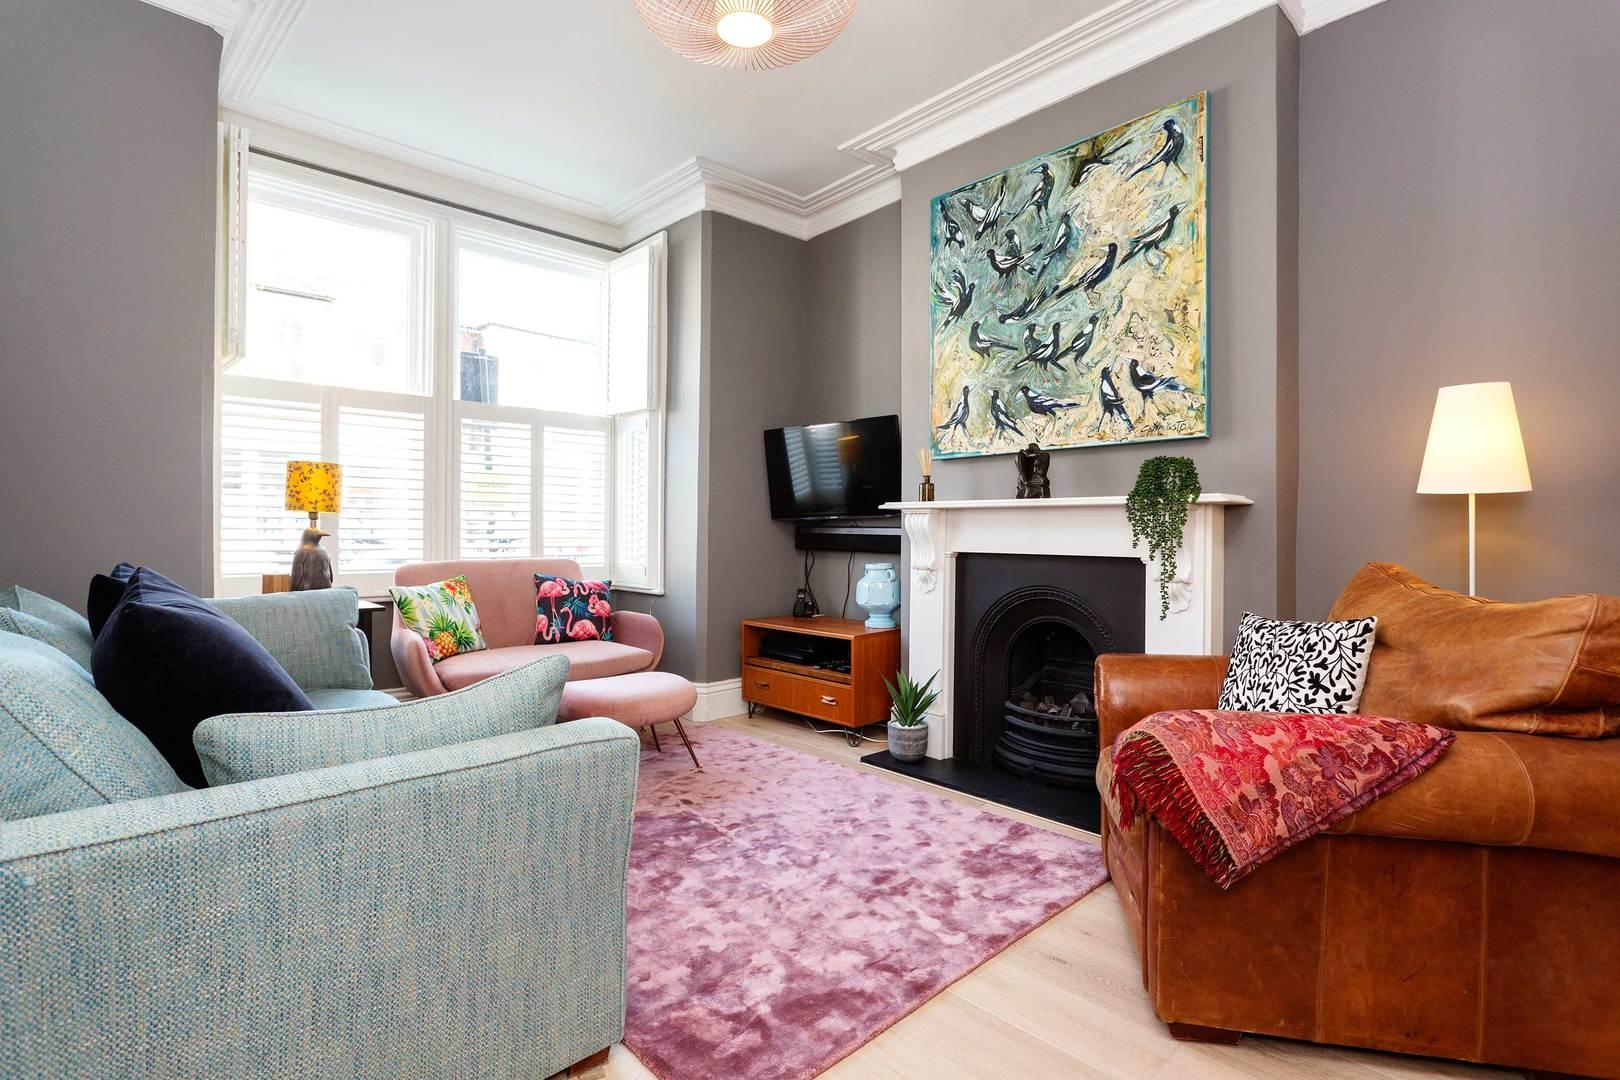 Property Image 2 - Colourful Trendy Islington House with Patio Garden